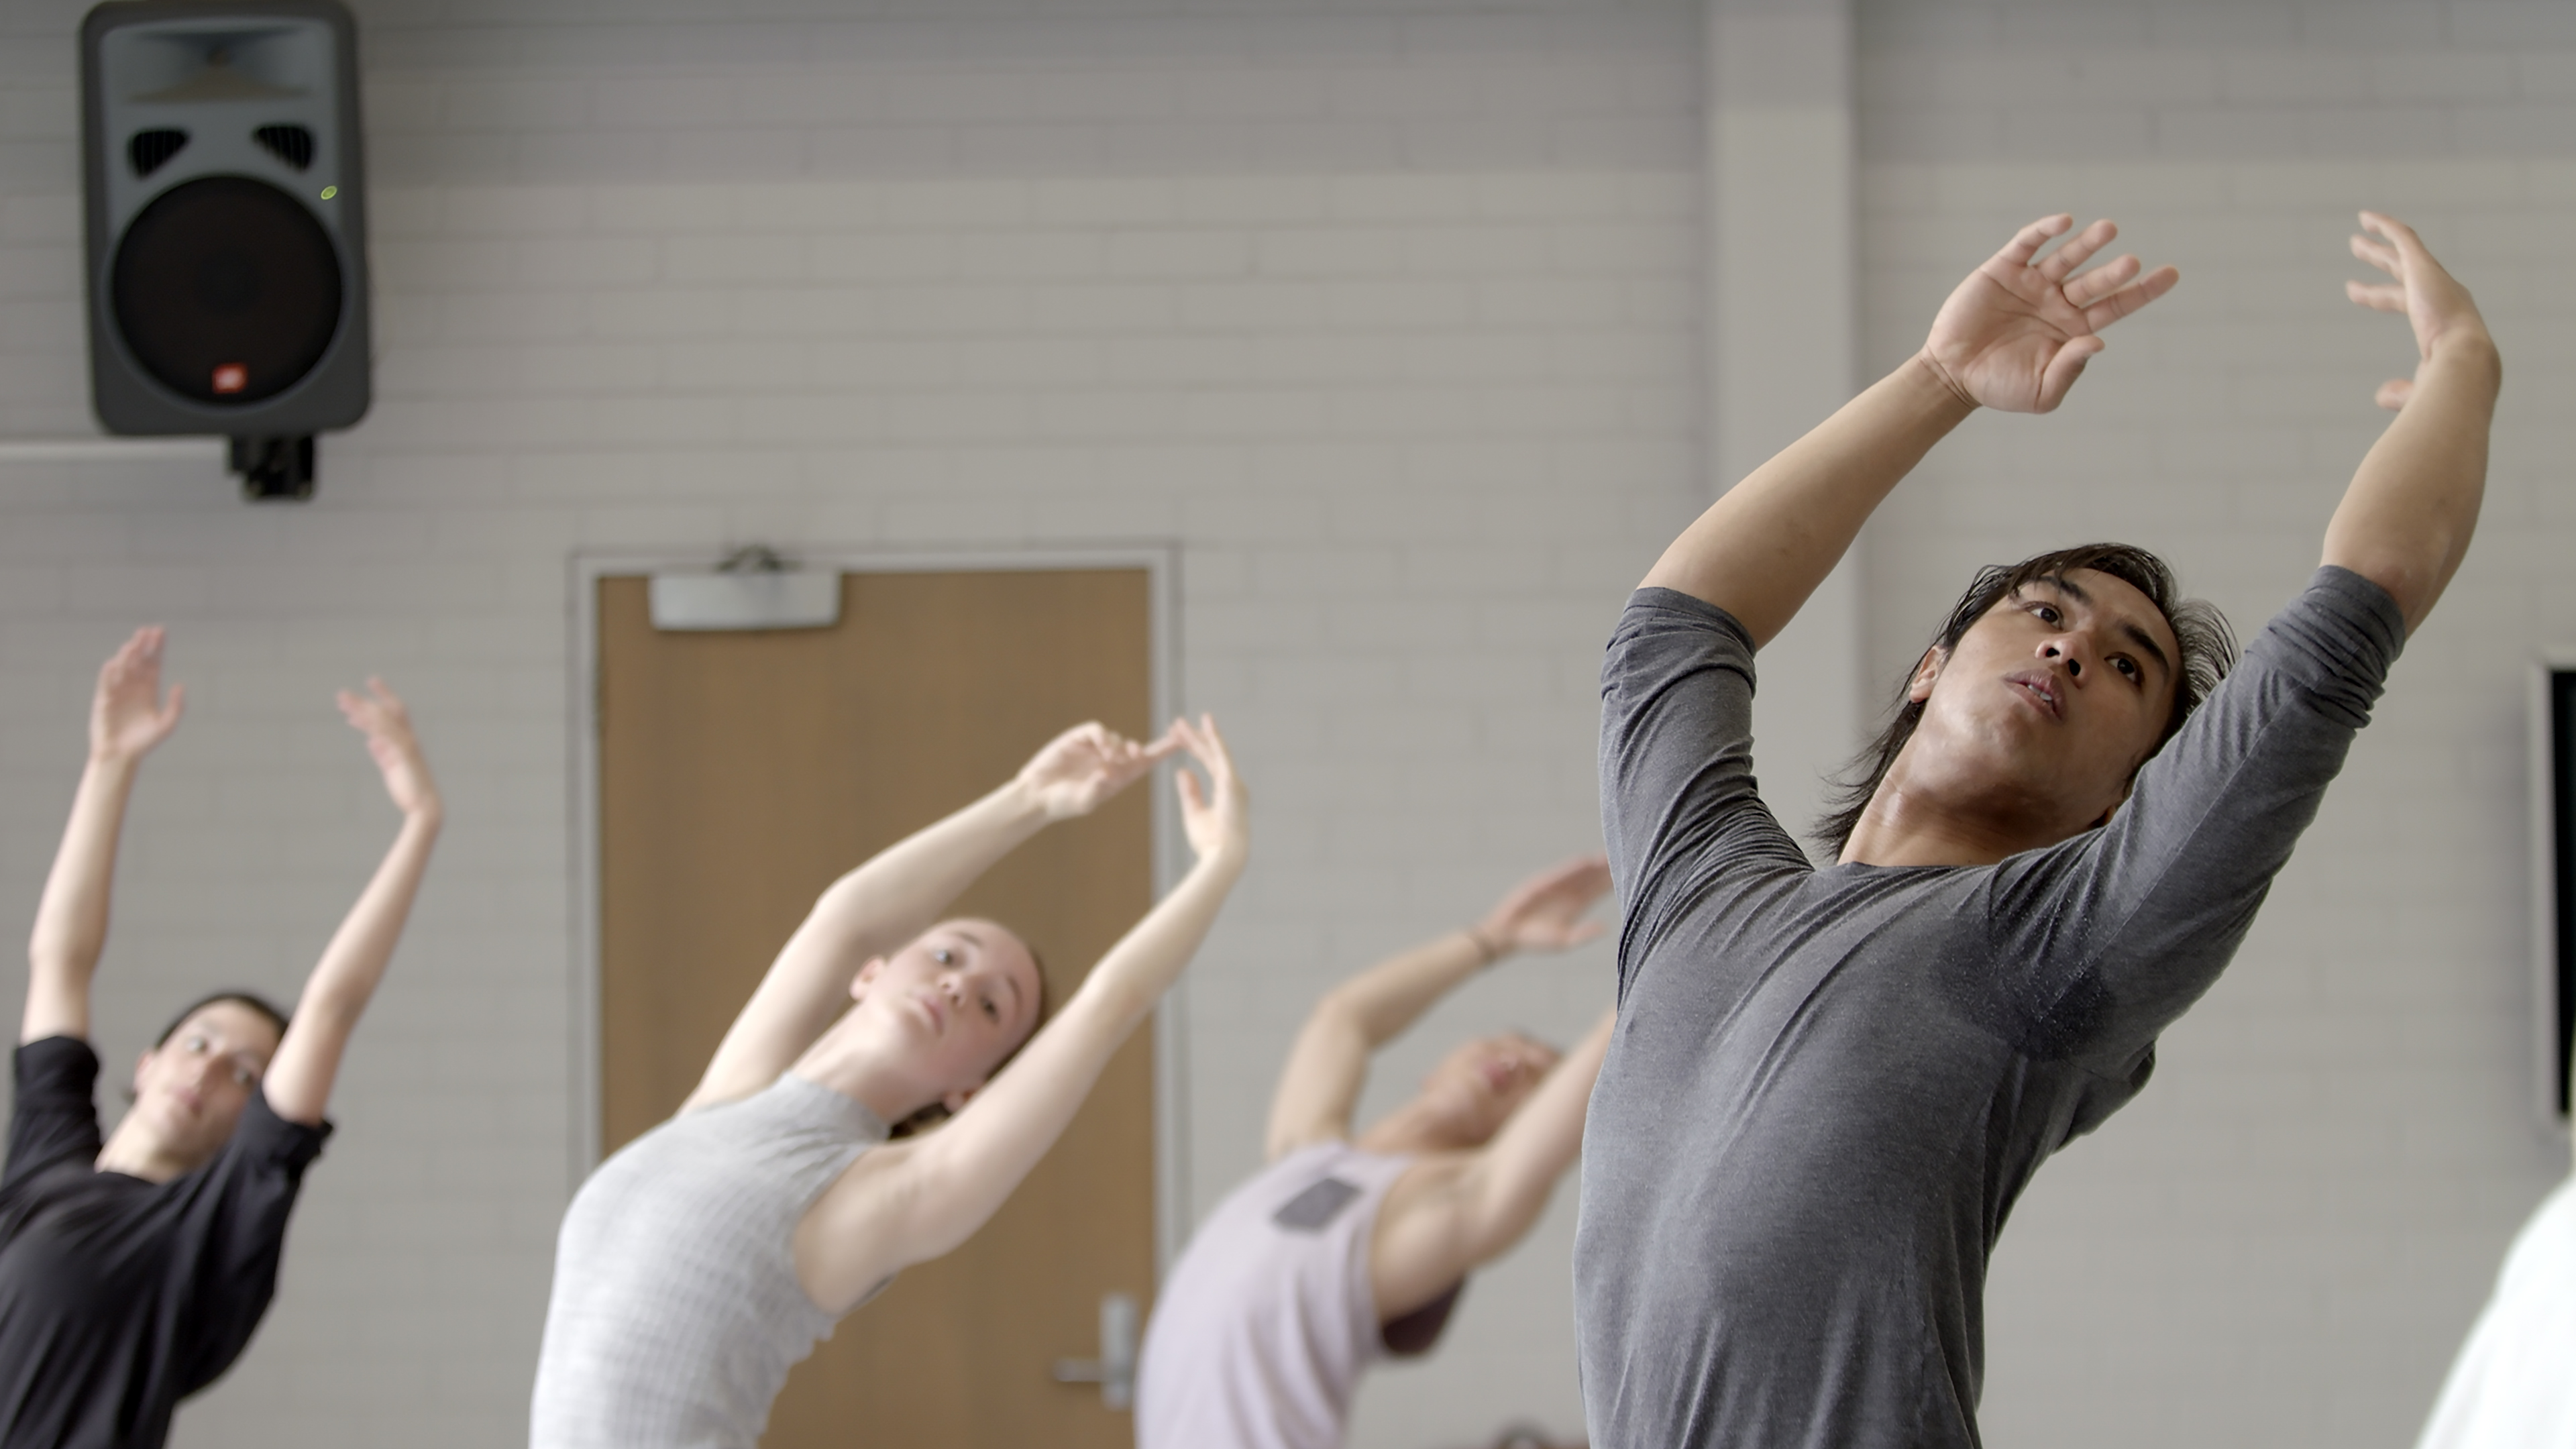 Bachelor of Fine Arts (Dance) student Kyle Ramboyong rehearses in a ballet class with peers at the Victorian College of the Arts.